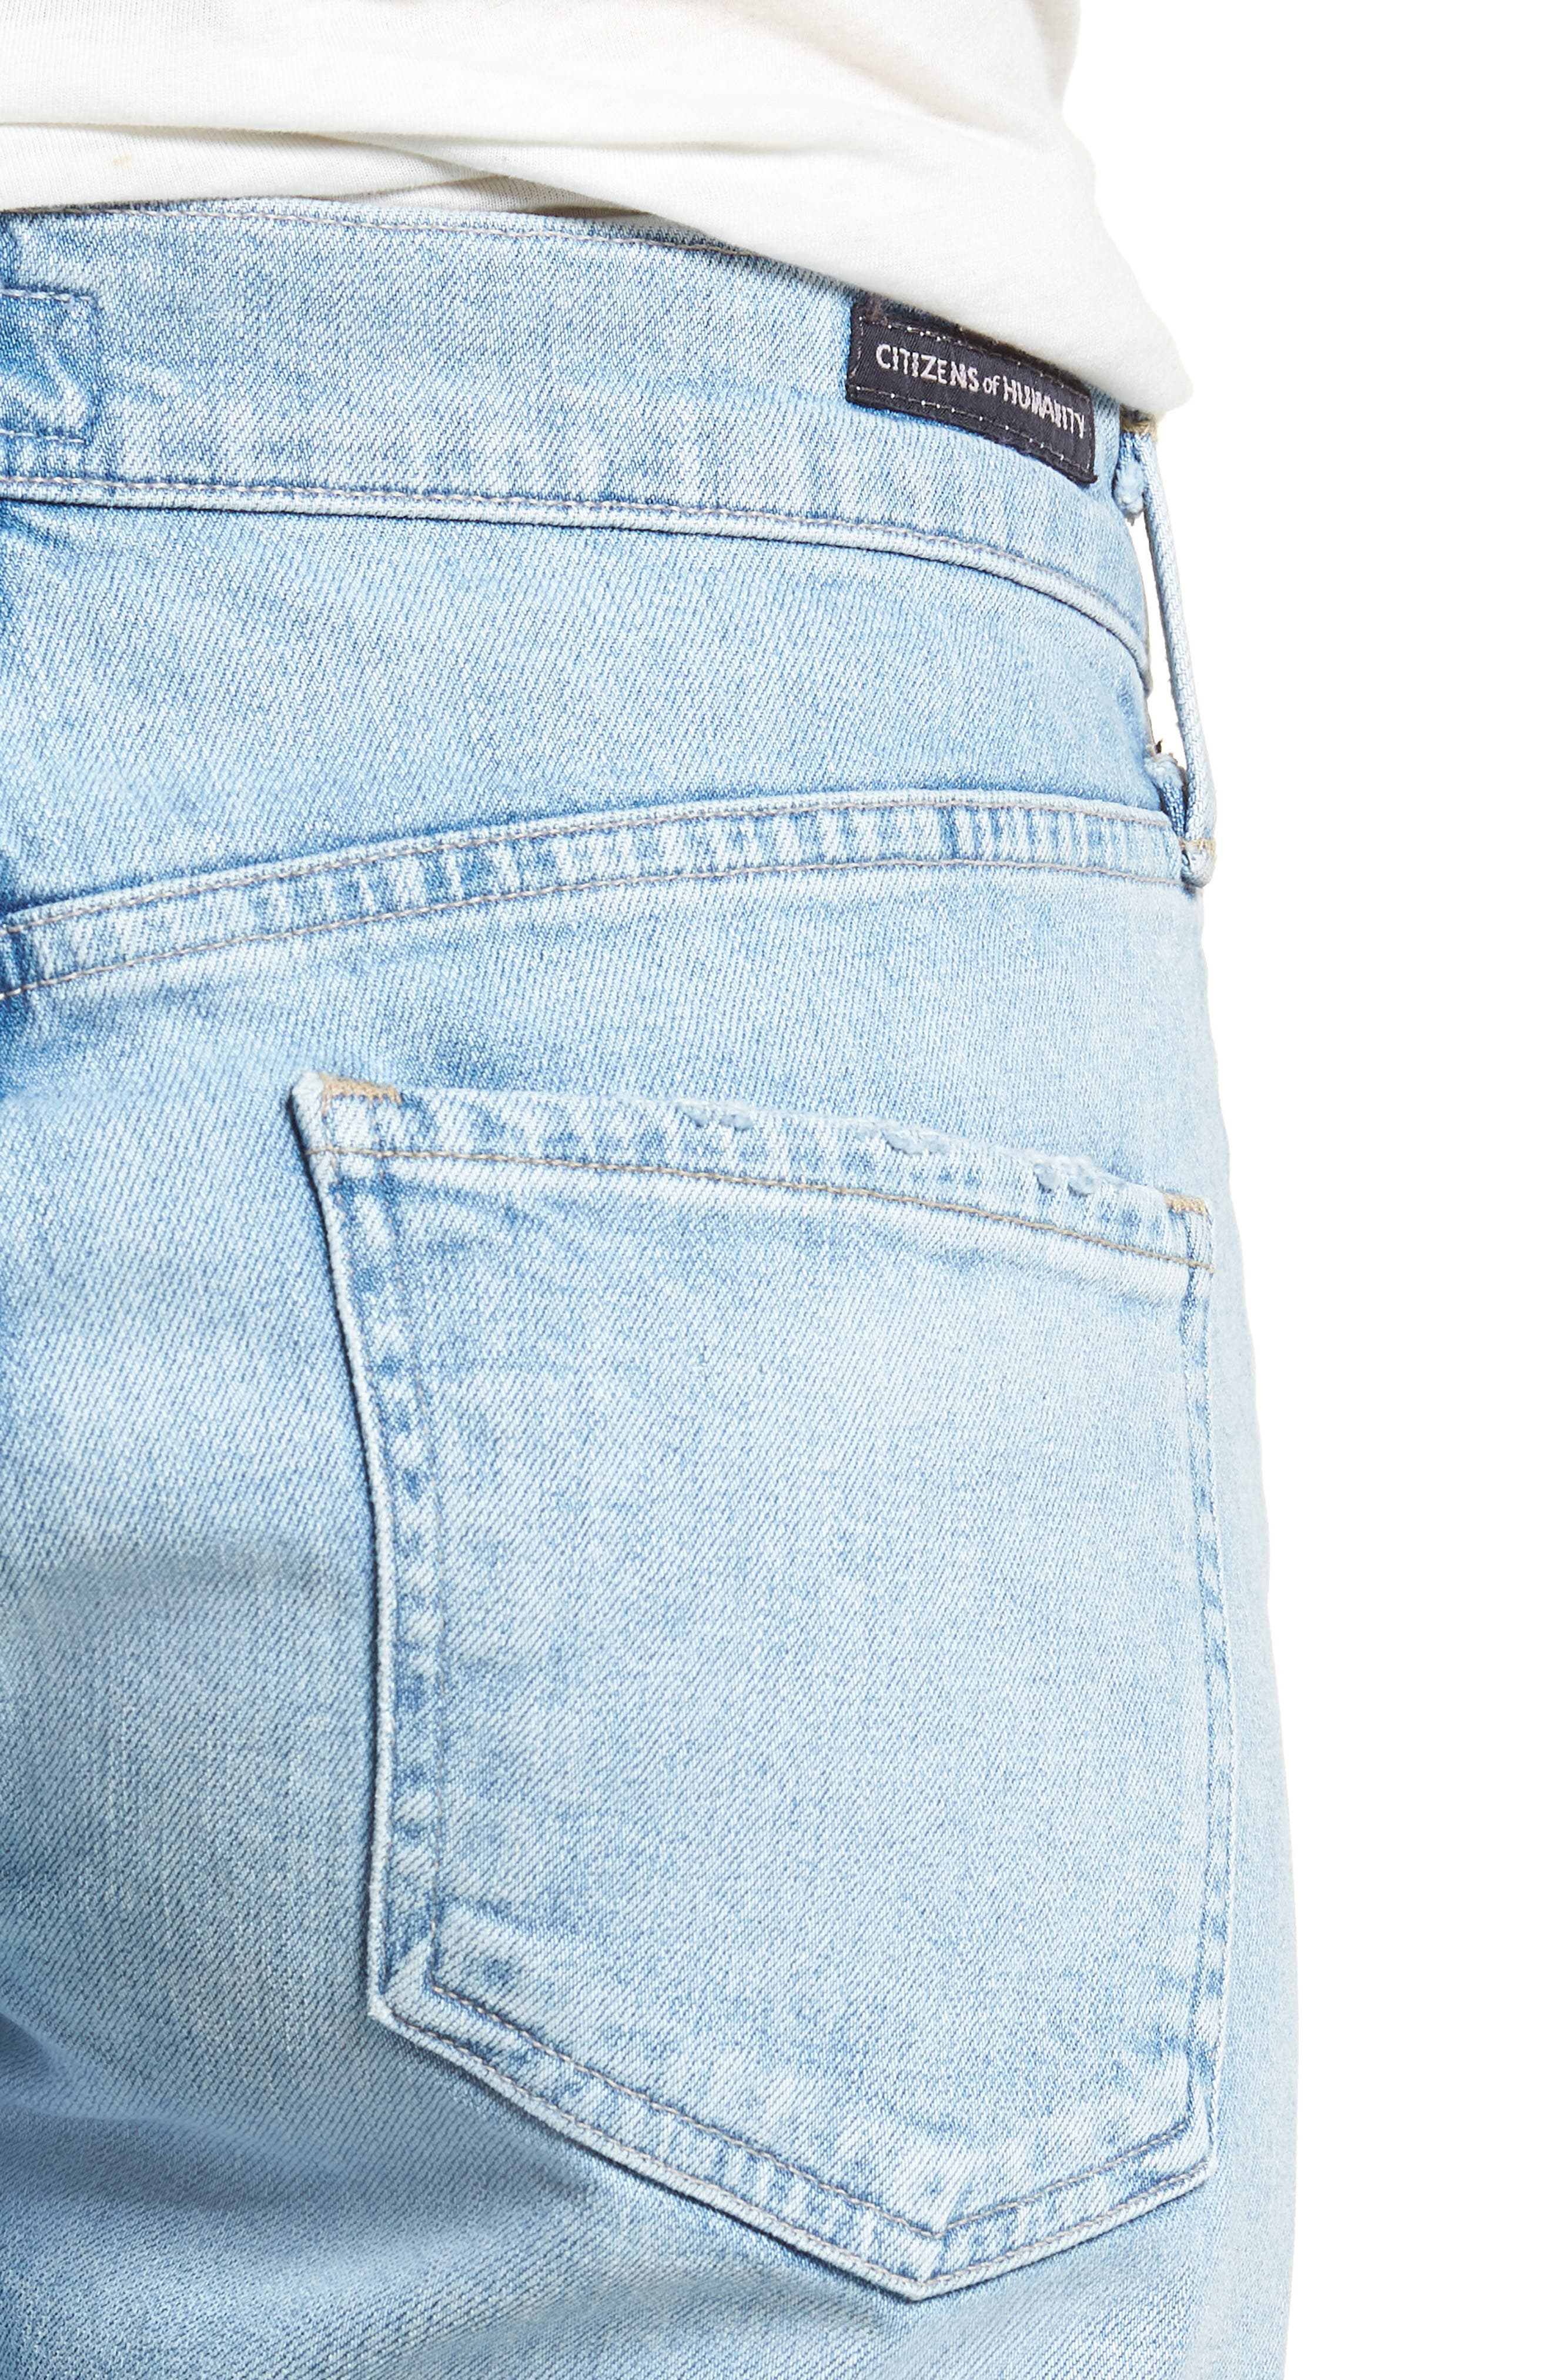 CITIZENS OF HUMANITY,                             Emerson Ripped Crop Slim Boyfriend Jeans,                             Alternate thumbnail 4, color,                             455